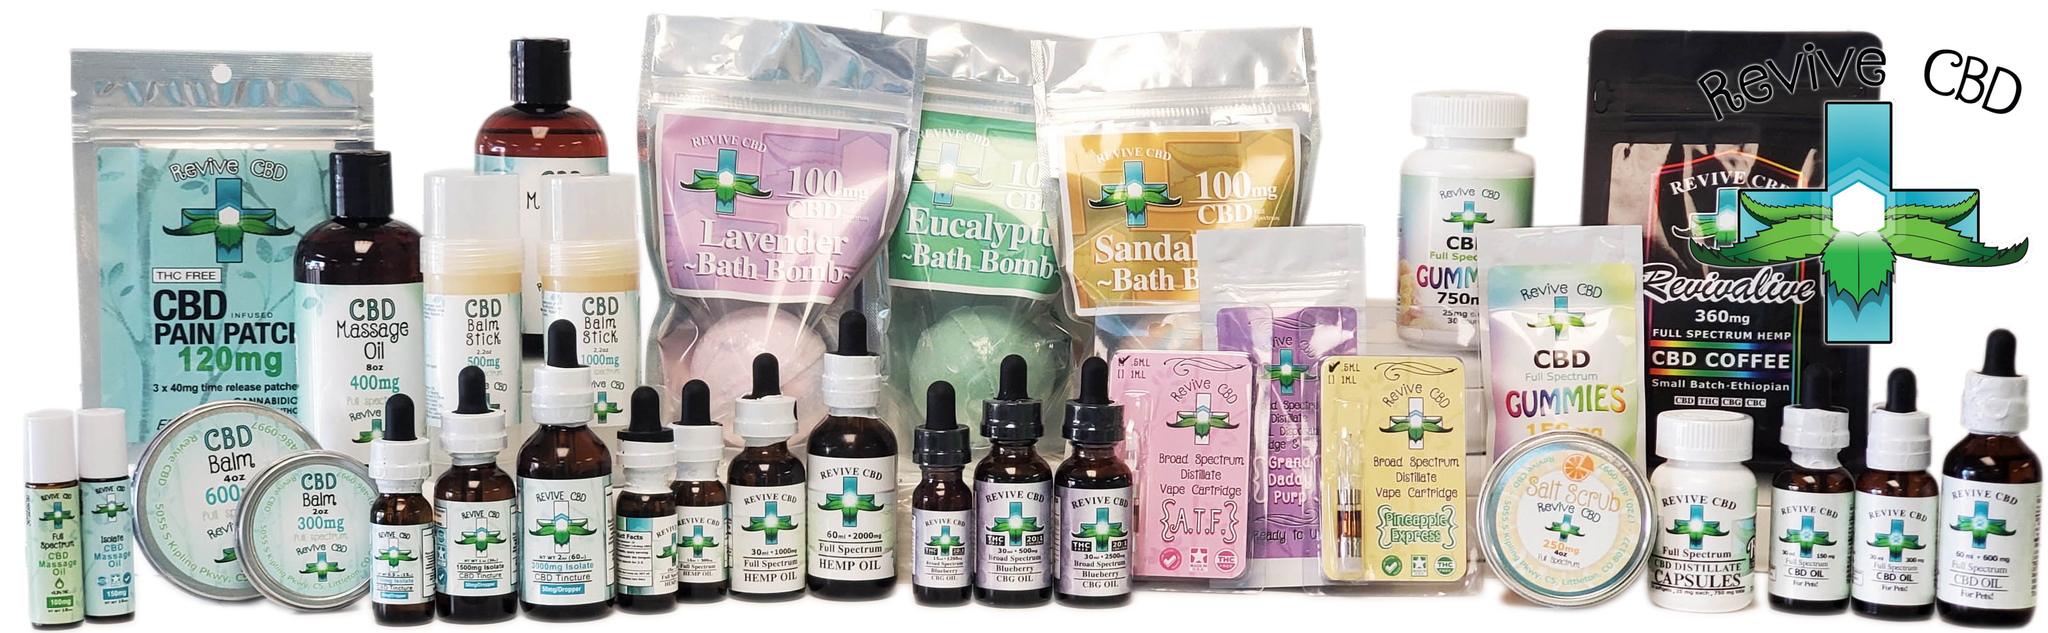 revive cbd littleton